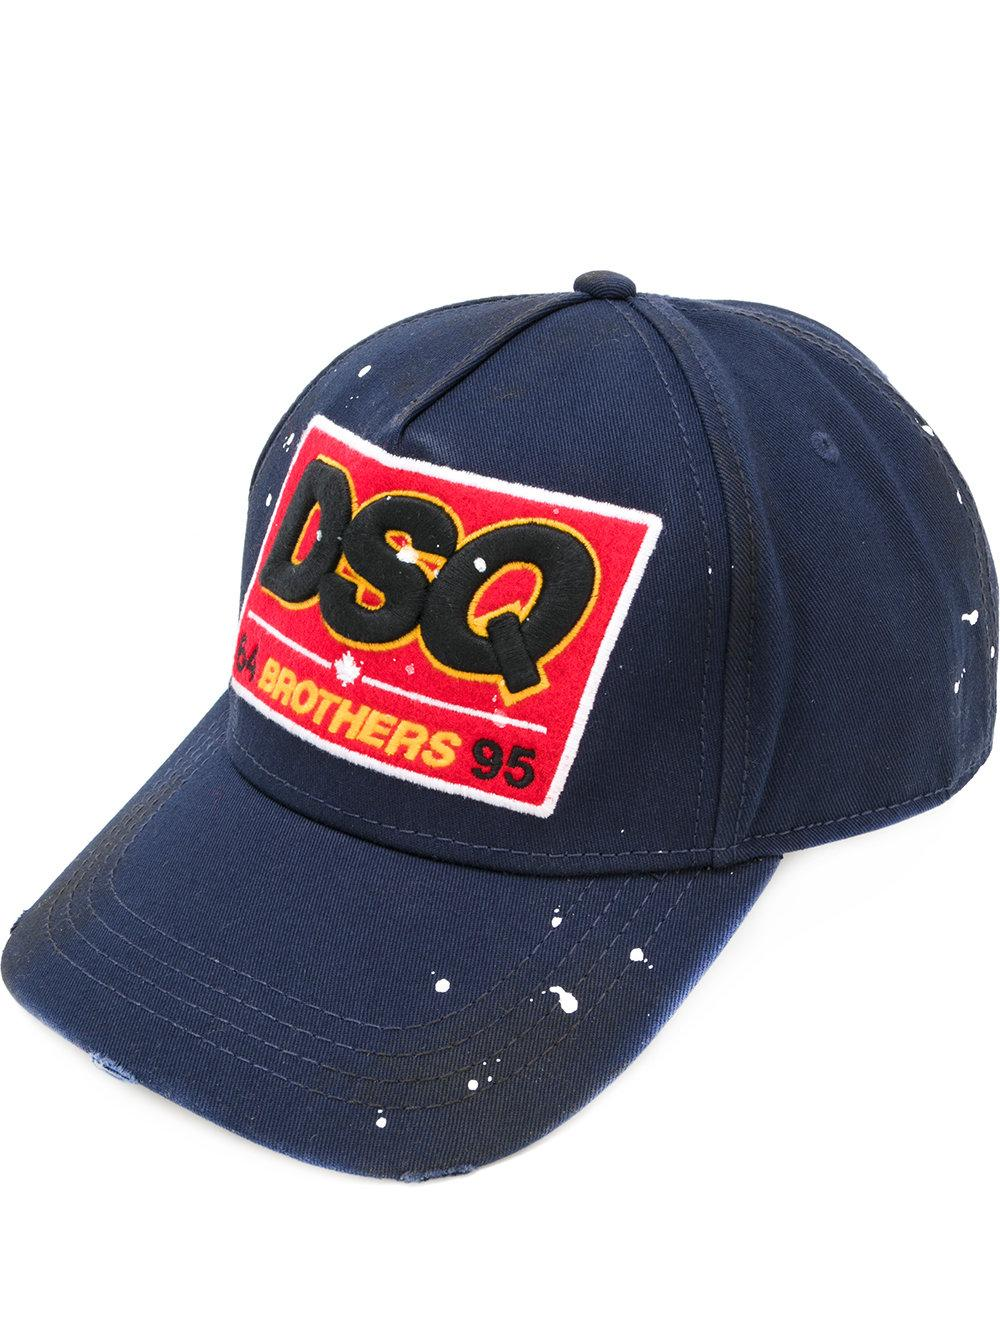 Dsquared 178 Cotton Dsq Patch Baseball Cap In Blue For Men Lyst